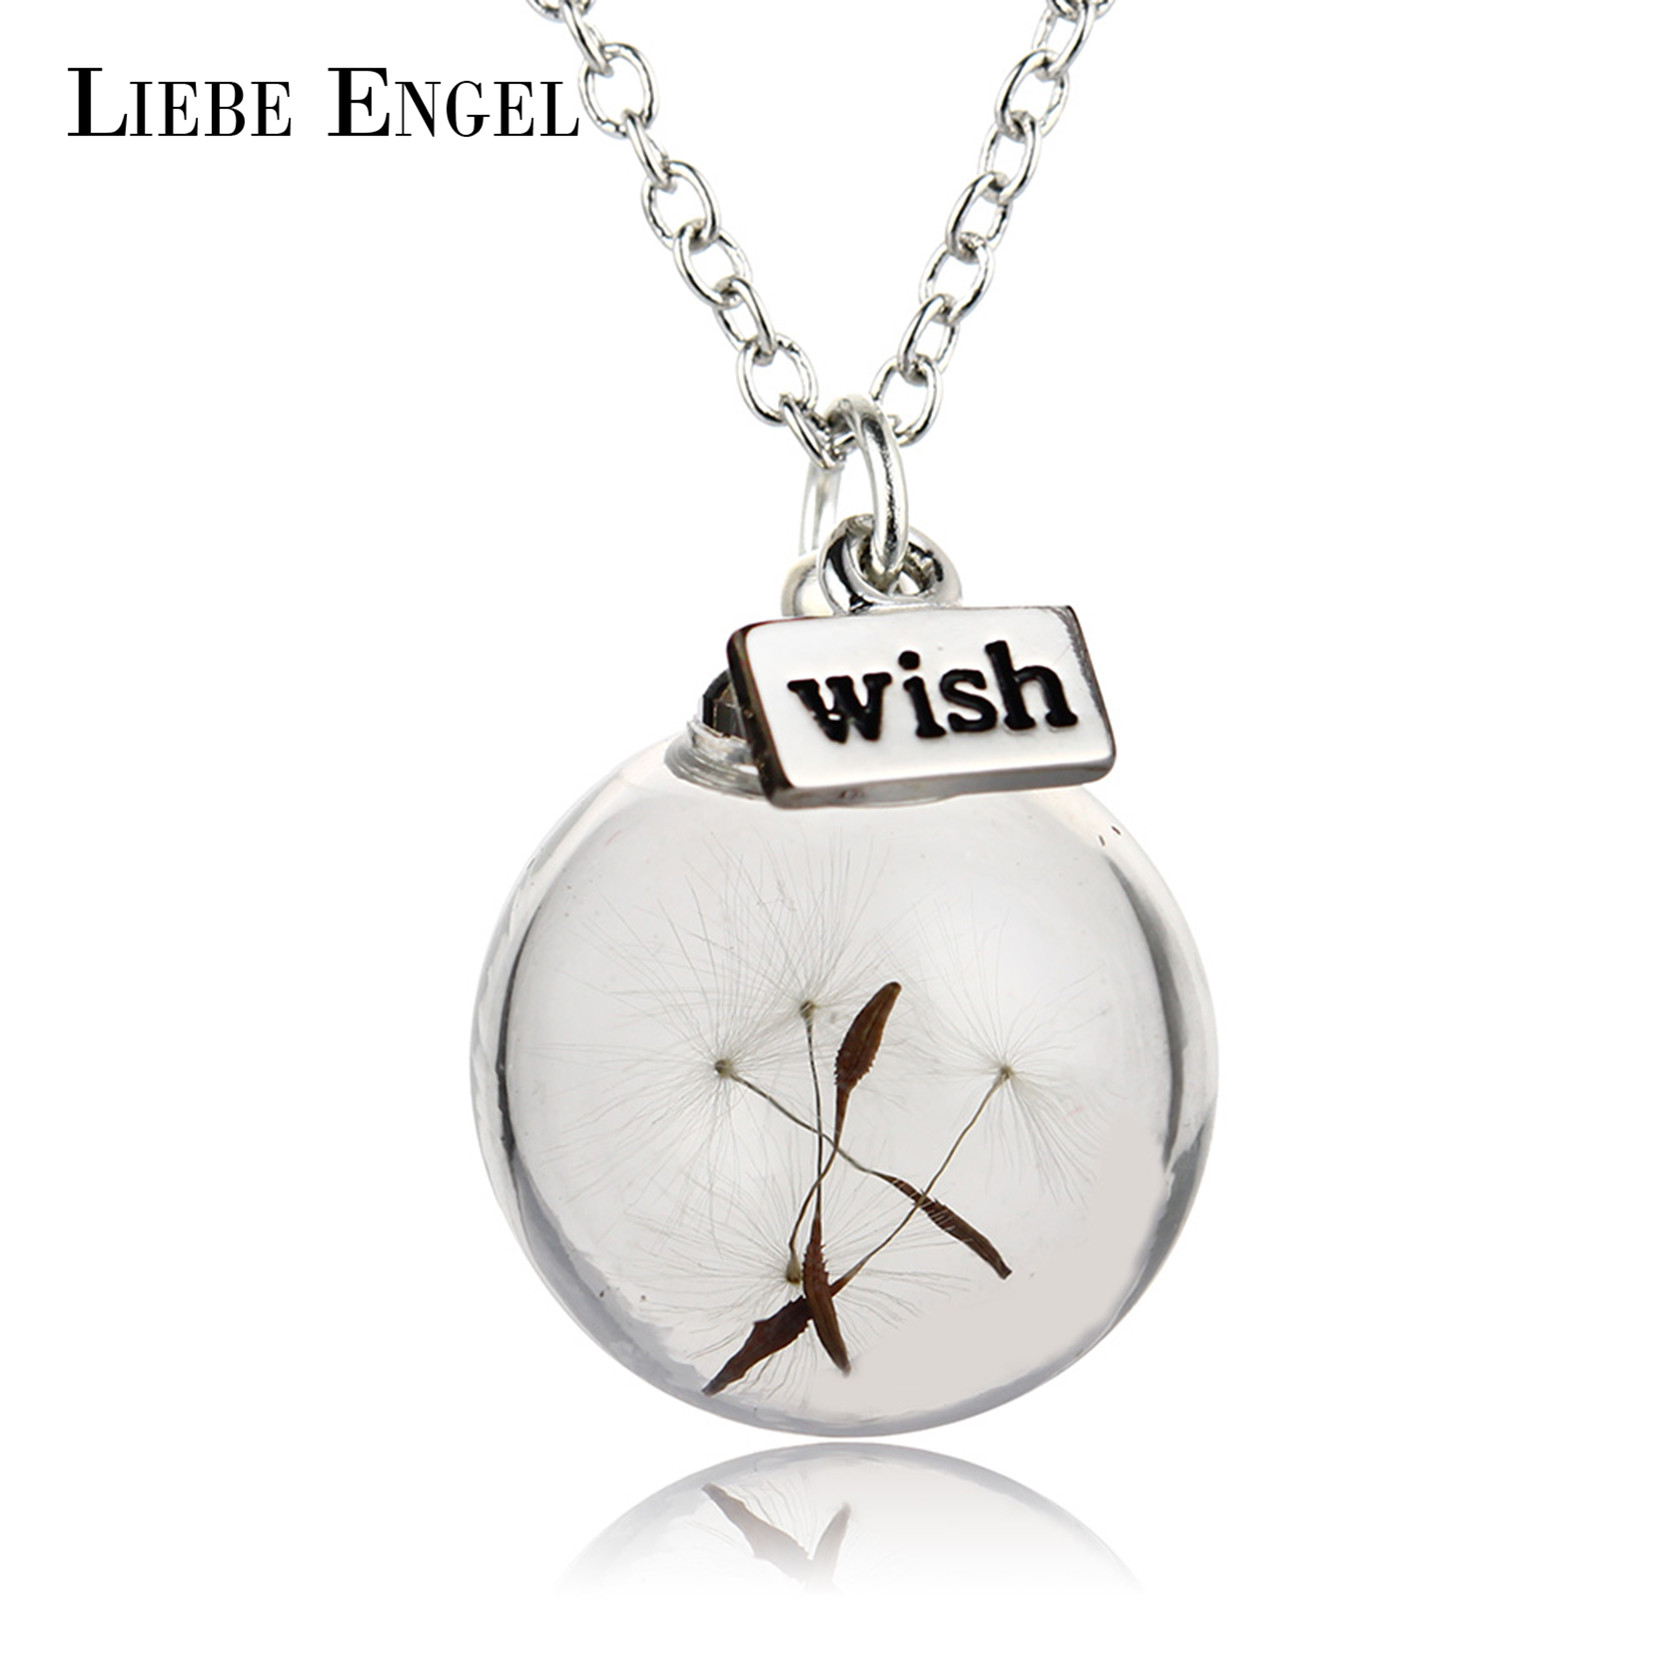 LIEBE ENGEL New Fashion Glass Ball Dandelion Pendant Wish Long Chain Statement Necklace Women